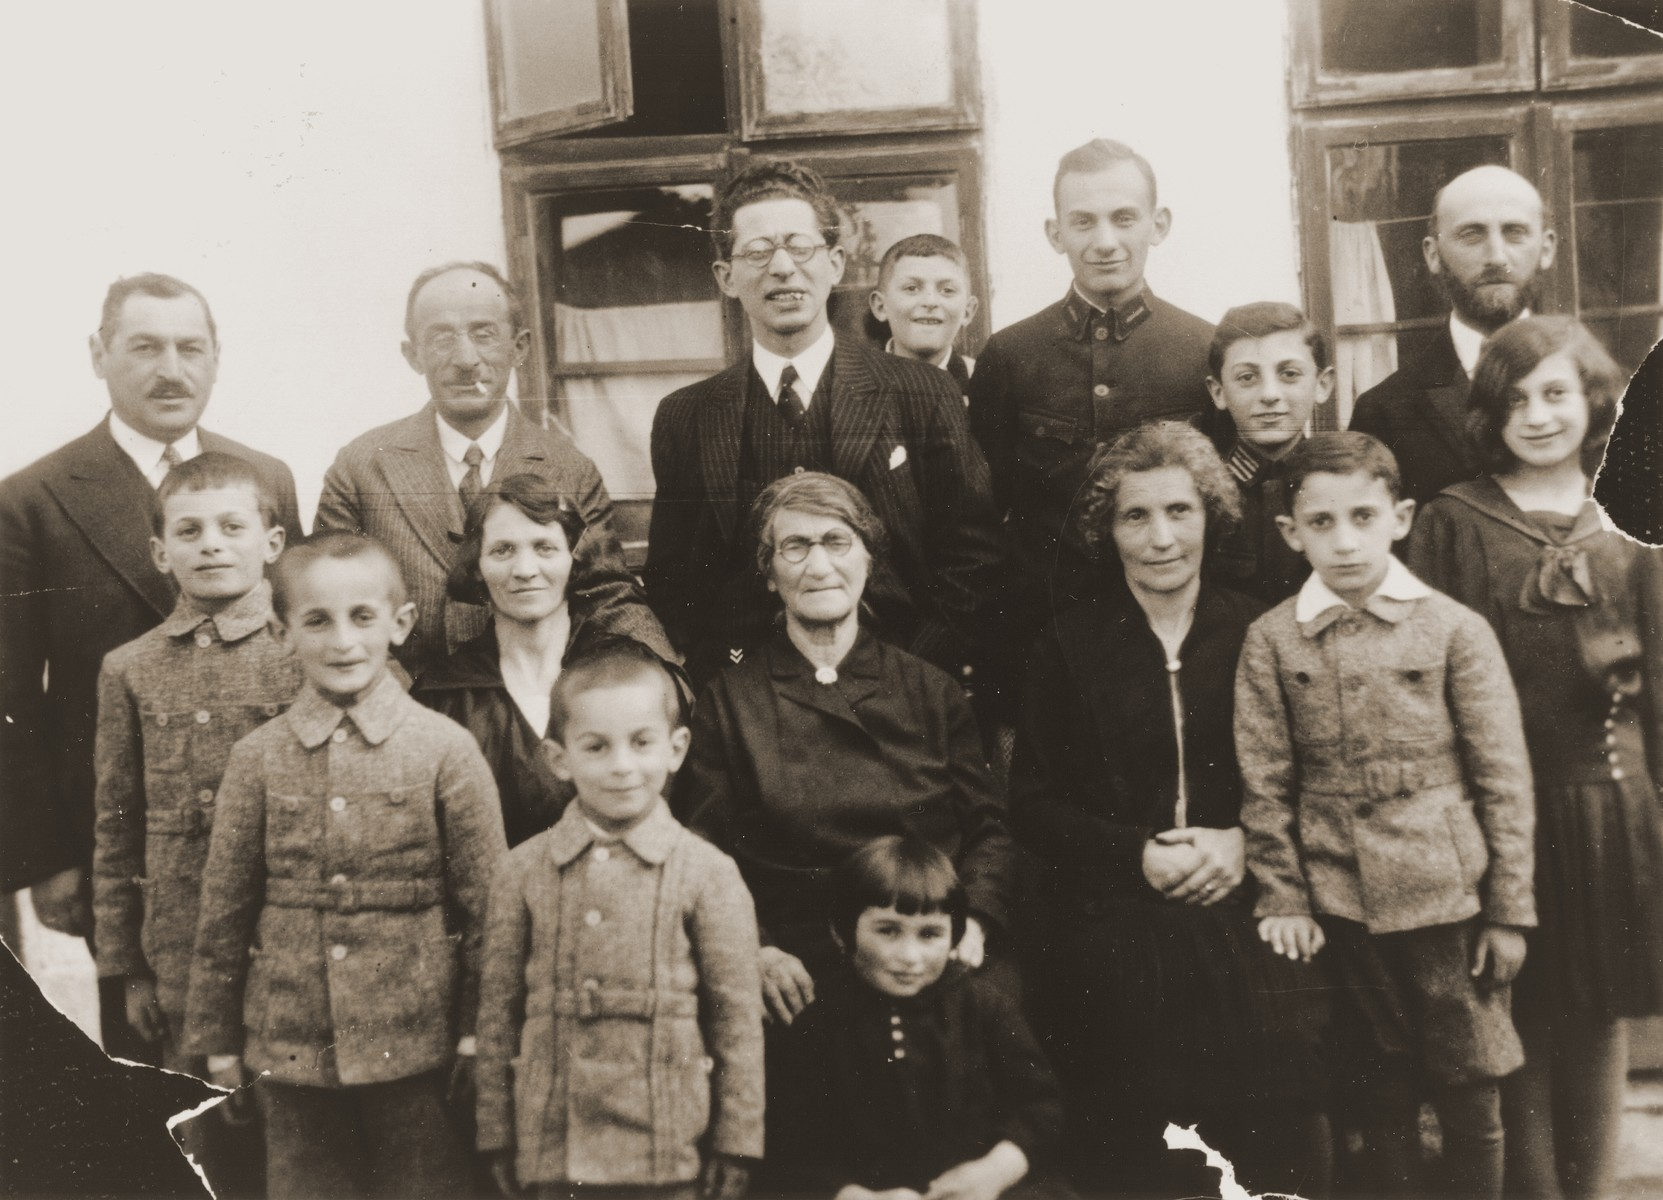 Group portrait of the extended Jewish Hochberg family in Brody, Poland.    Pictured standing in the back row from left to right are: Bernard Hochberg, Gerszon Hochberg (the donor's uncle), Marco Chaim Lifschitz (the donor's uncle), Sigmund Hochberg, Sonio and Itamar Katz (the donor's cousins), Efraim Katz (Sonio and Itamar's father and the donor's uncle). In the middle row, left to right, are: Itamar Lifschitz; Chaja (Hochberg) Lifschitz (the wife of Gerszon Hochberg), Batja (Lifschitz) Hochberg (the donor's grandmother), Malka (Hochberg) Katz (the donor' aunt), Abram Katz, and Rachel Katz.  In the front row,  from left to right, are Arie Lifschitz, Szaja Lifschitz, and Eugenia Hochberg.